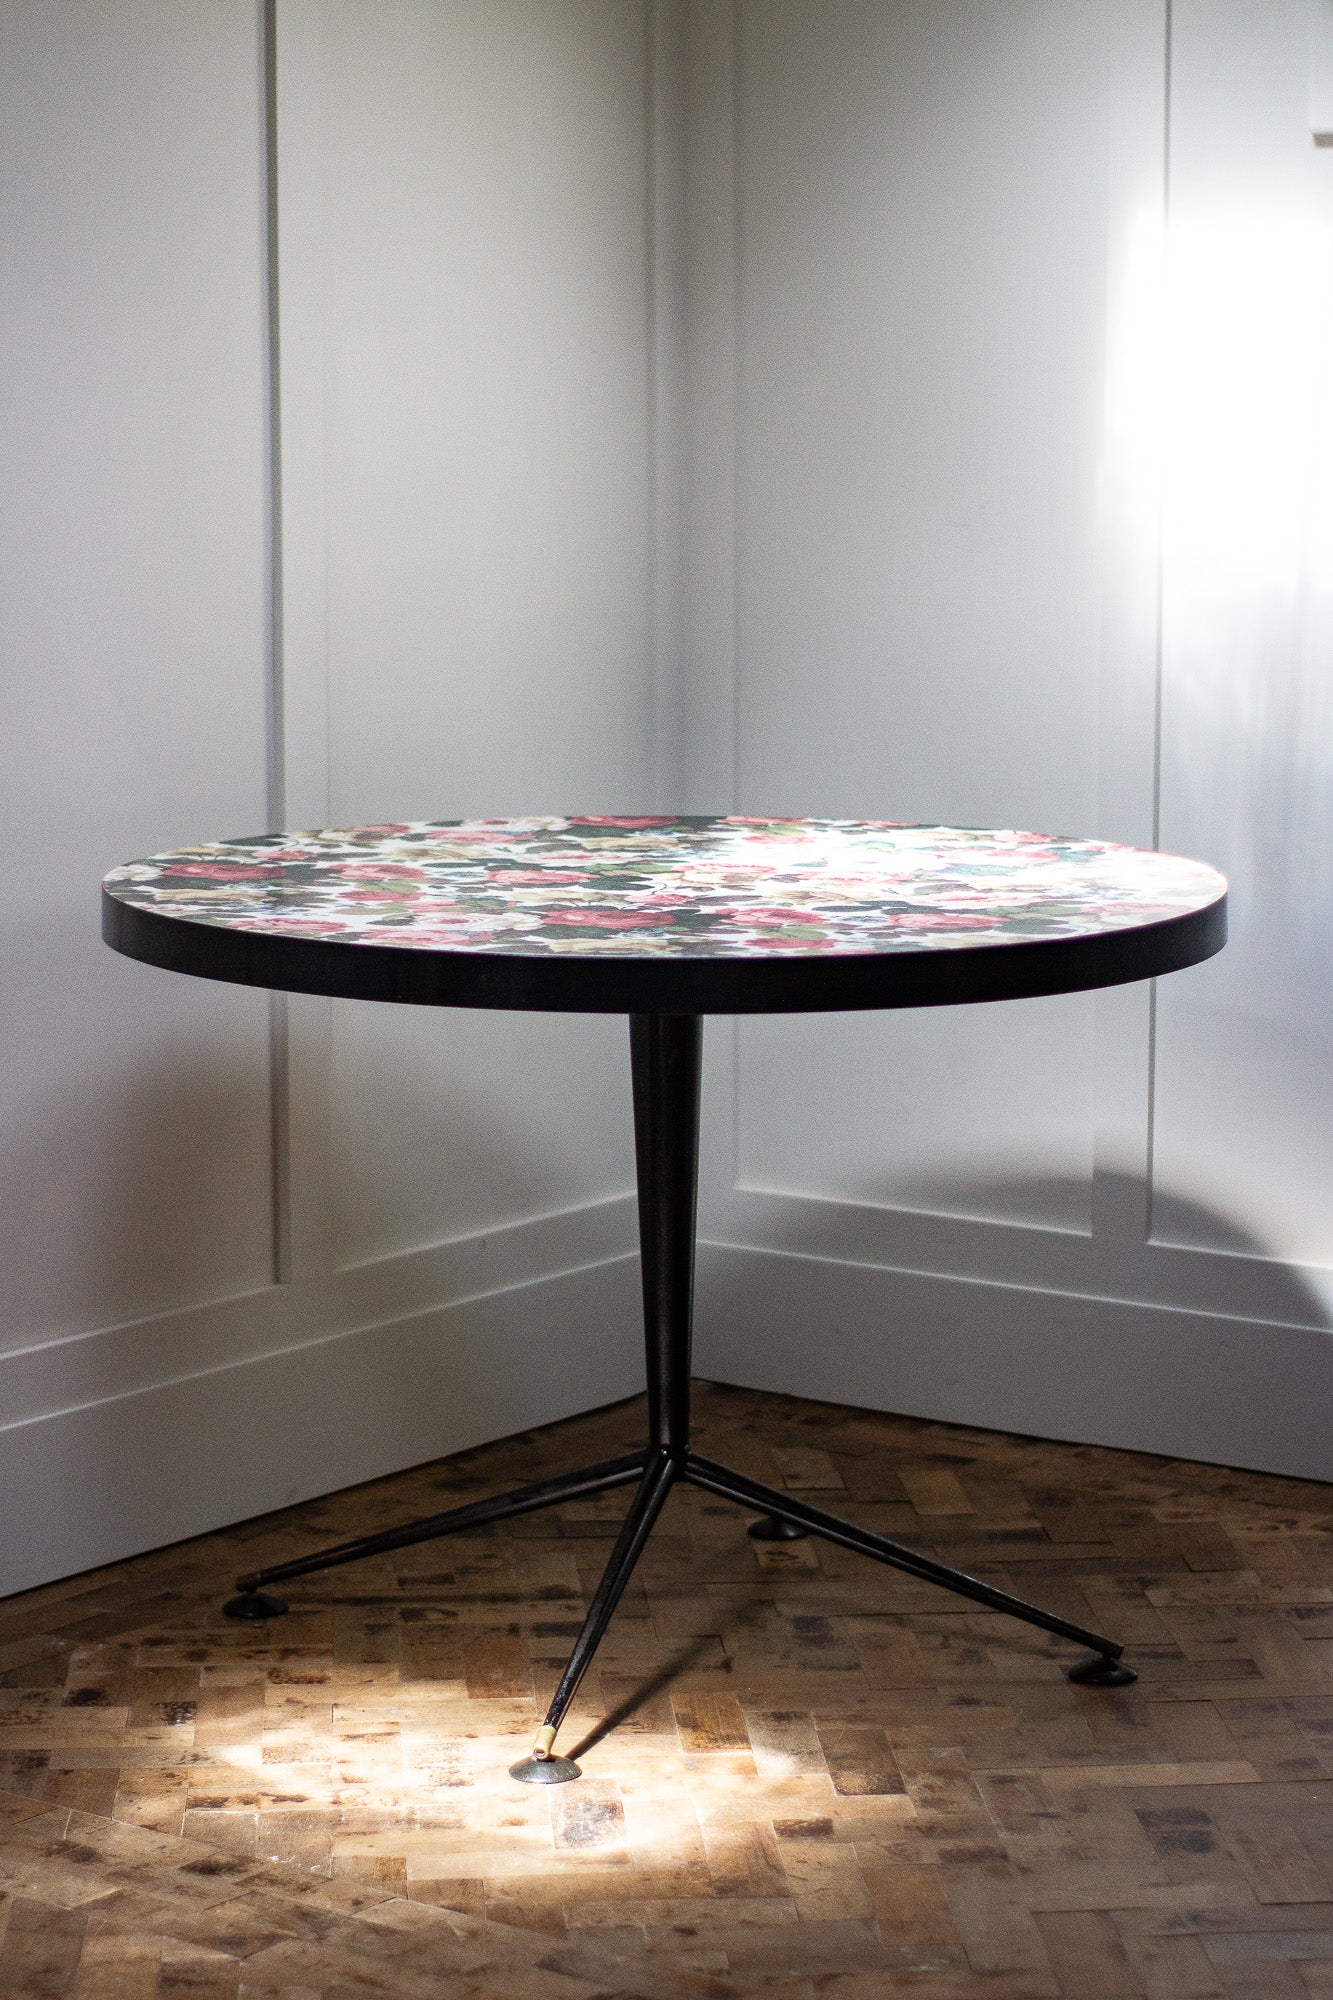 separation shoes 1a8f8 2a5bb A.J Milnes Dining Table for Heals